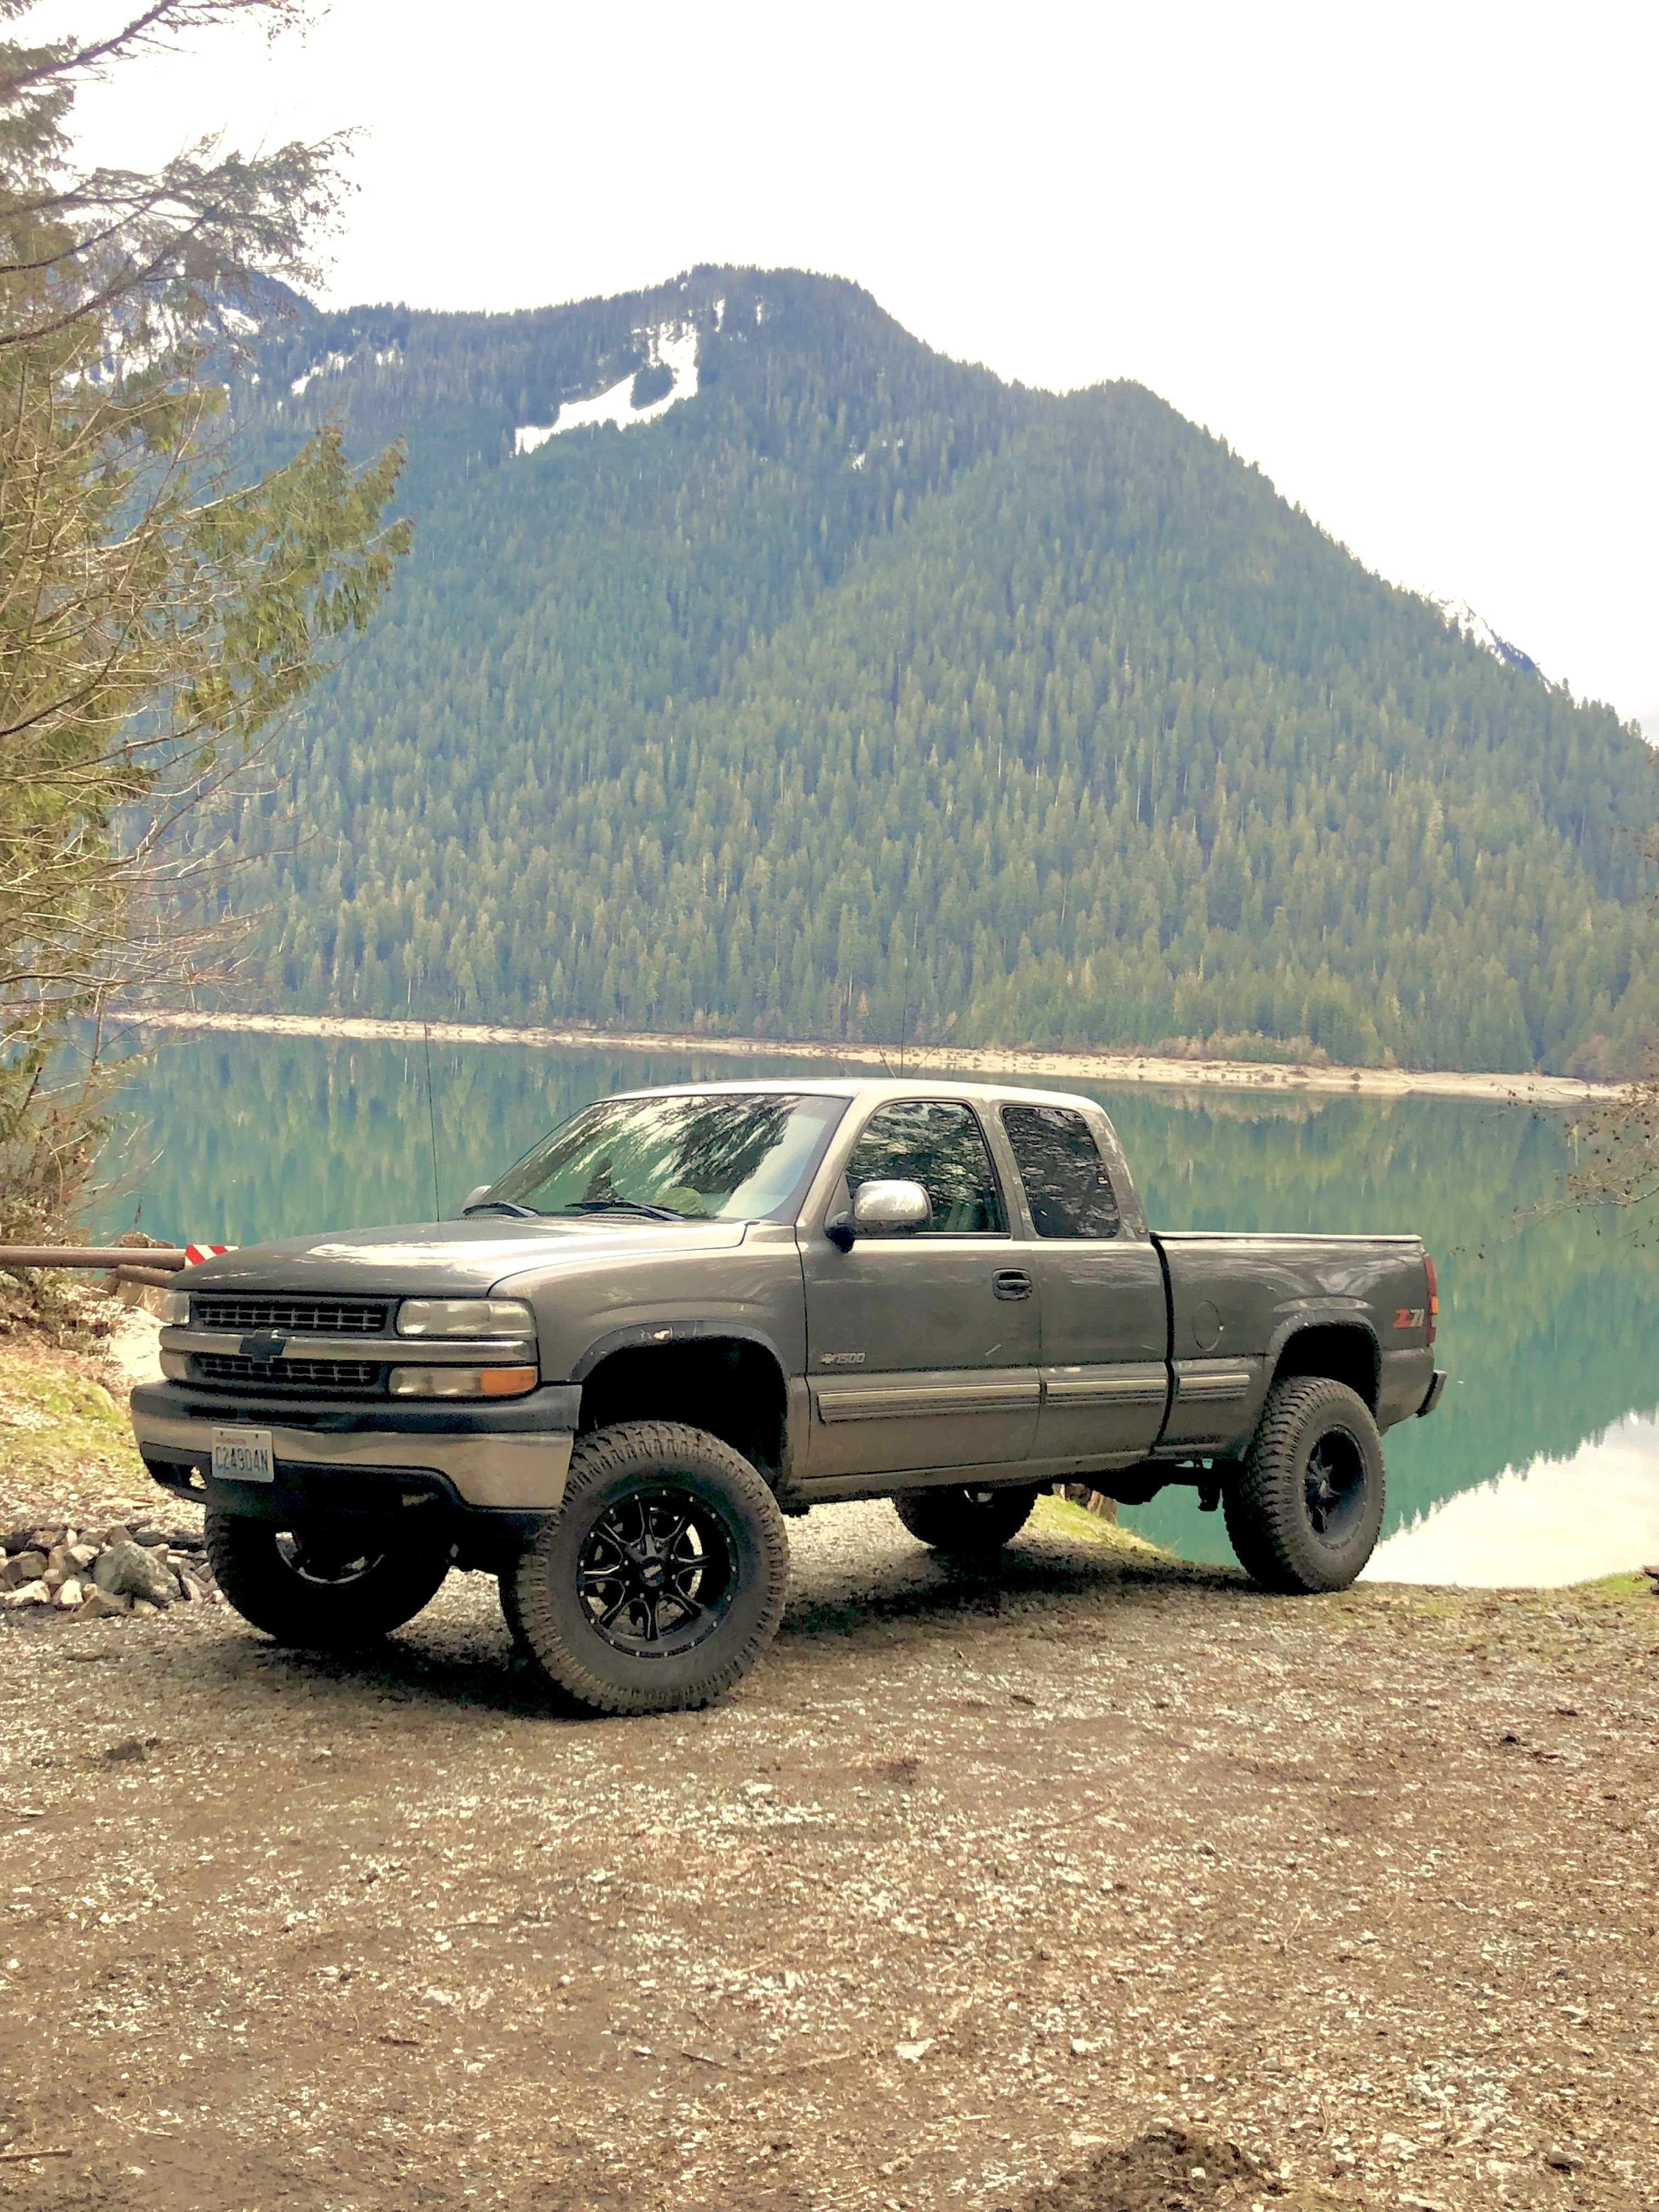 Pin By Chris Marple On Trucks Lifted Chevy Trucks Chevy Trucks Chevy Silverado